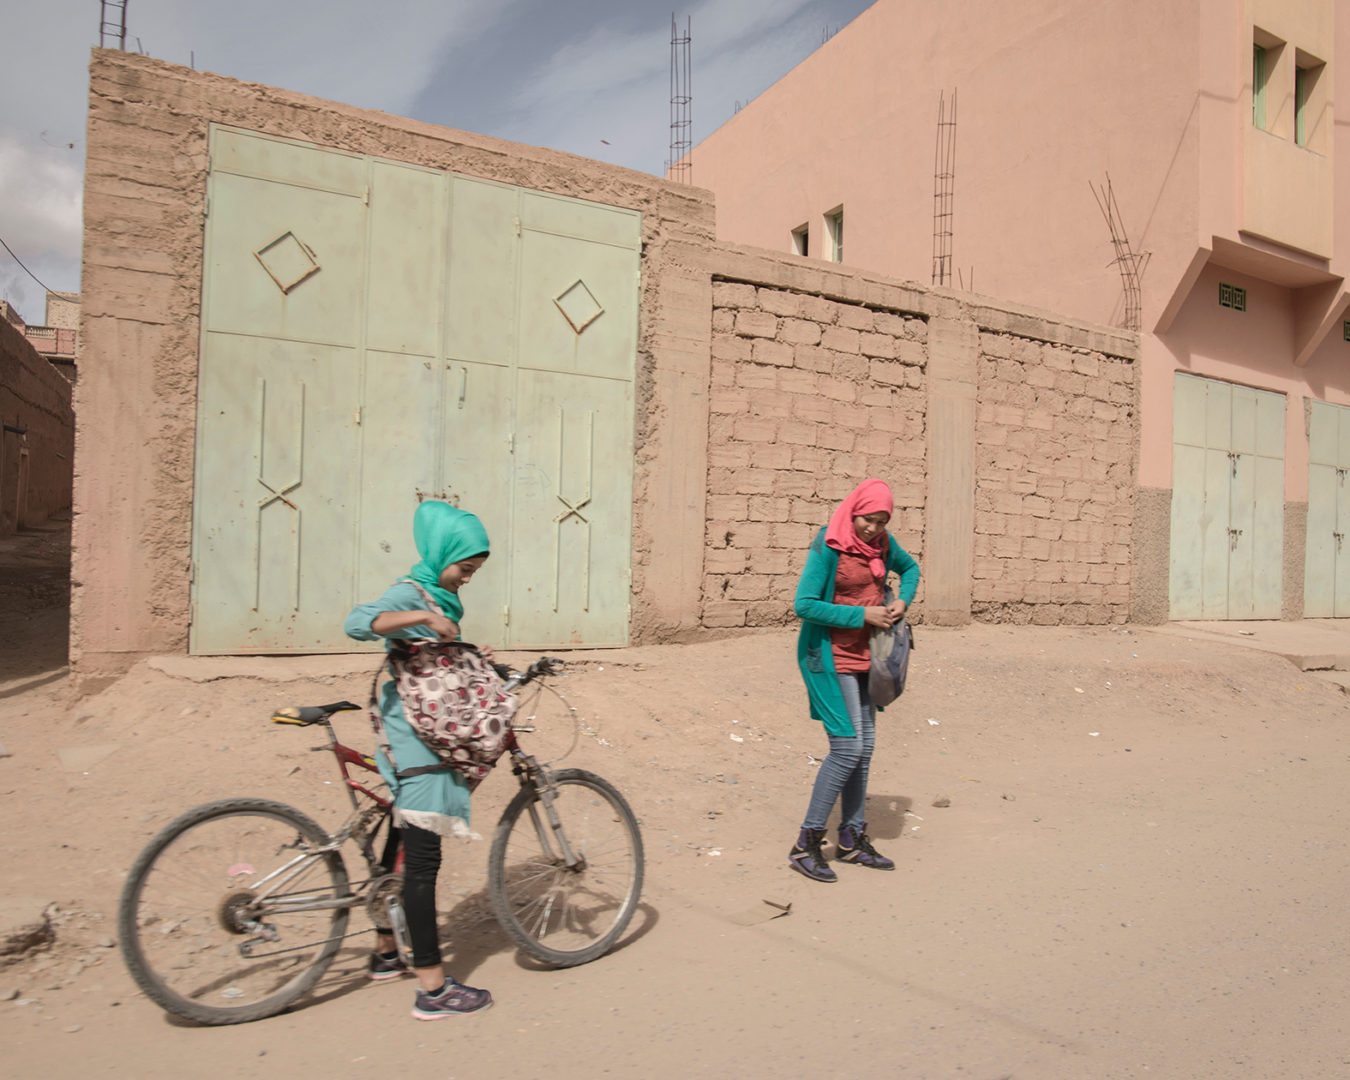 Two women in Rissani, Morocco